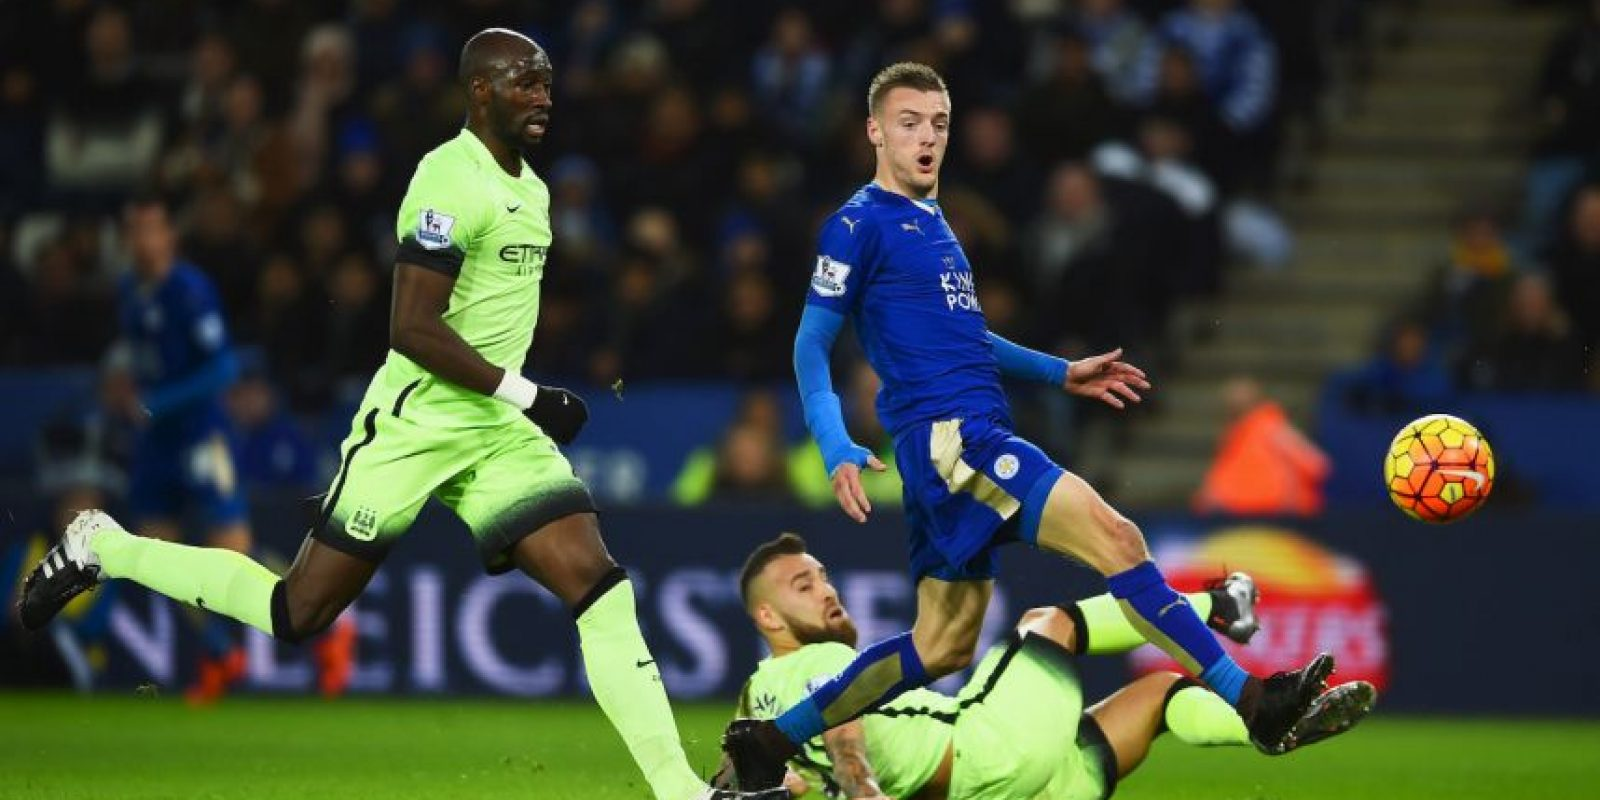 Manchester City vs. Leicester City Foto: Getty Images